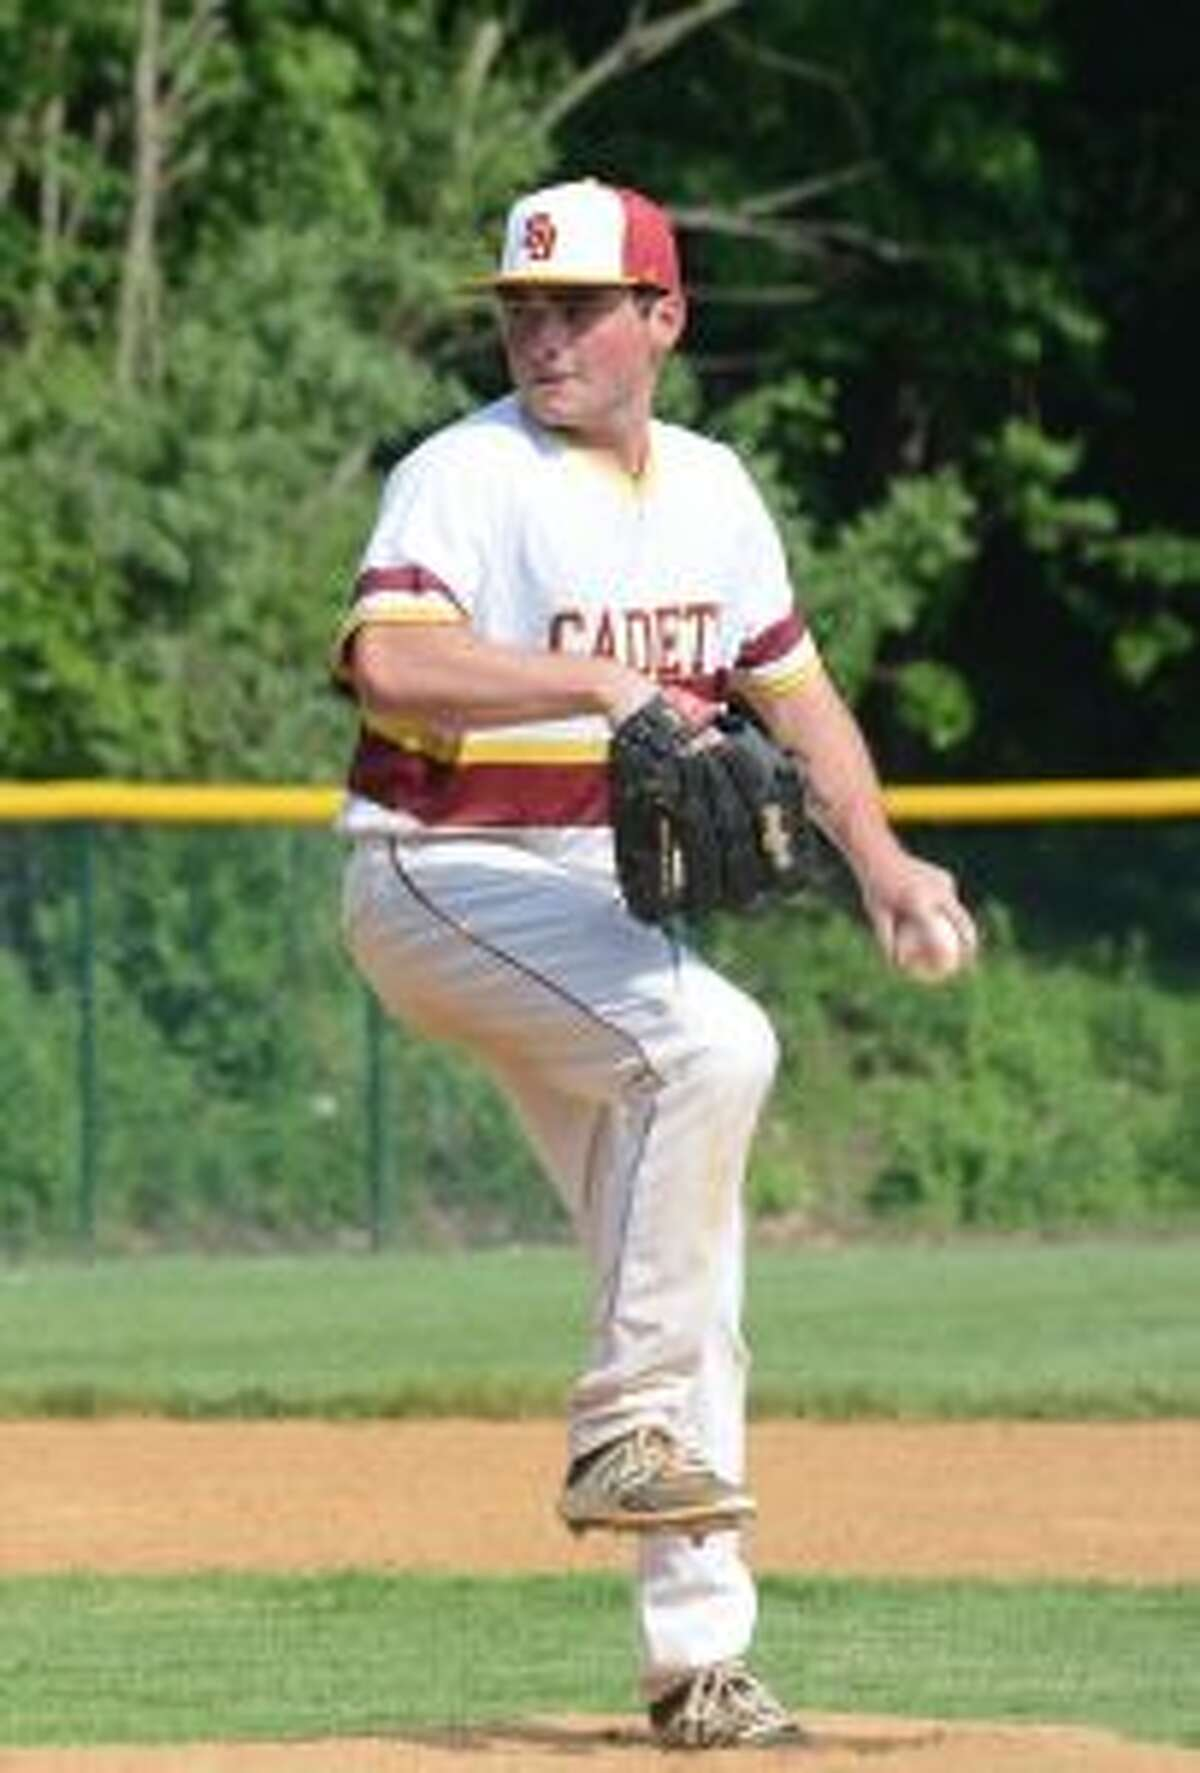 Jim Evans pitched six innings and had a pair of hits, including an RBI double.